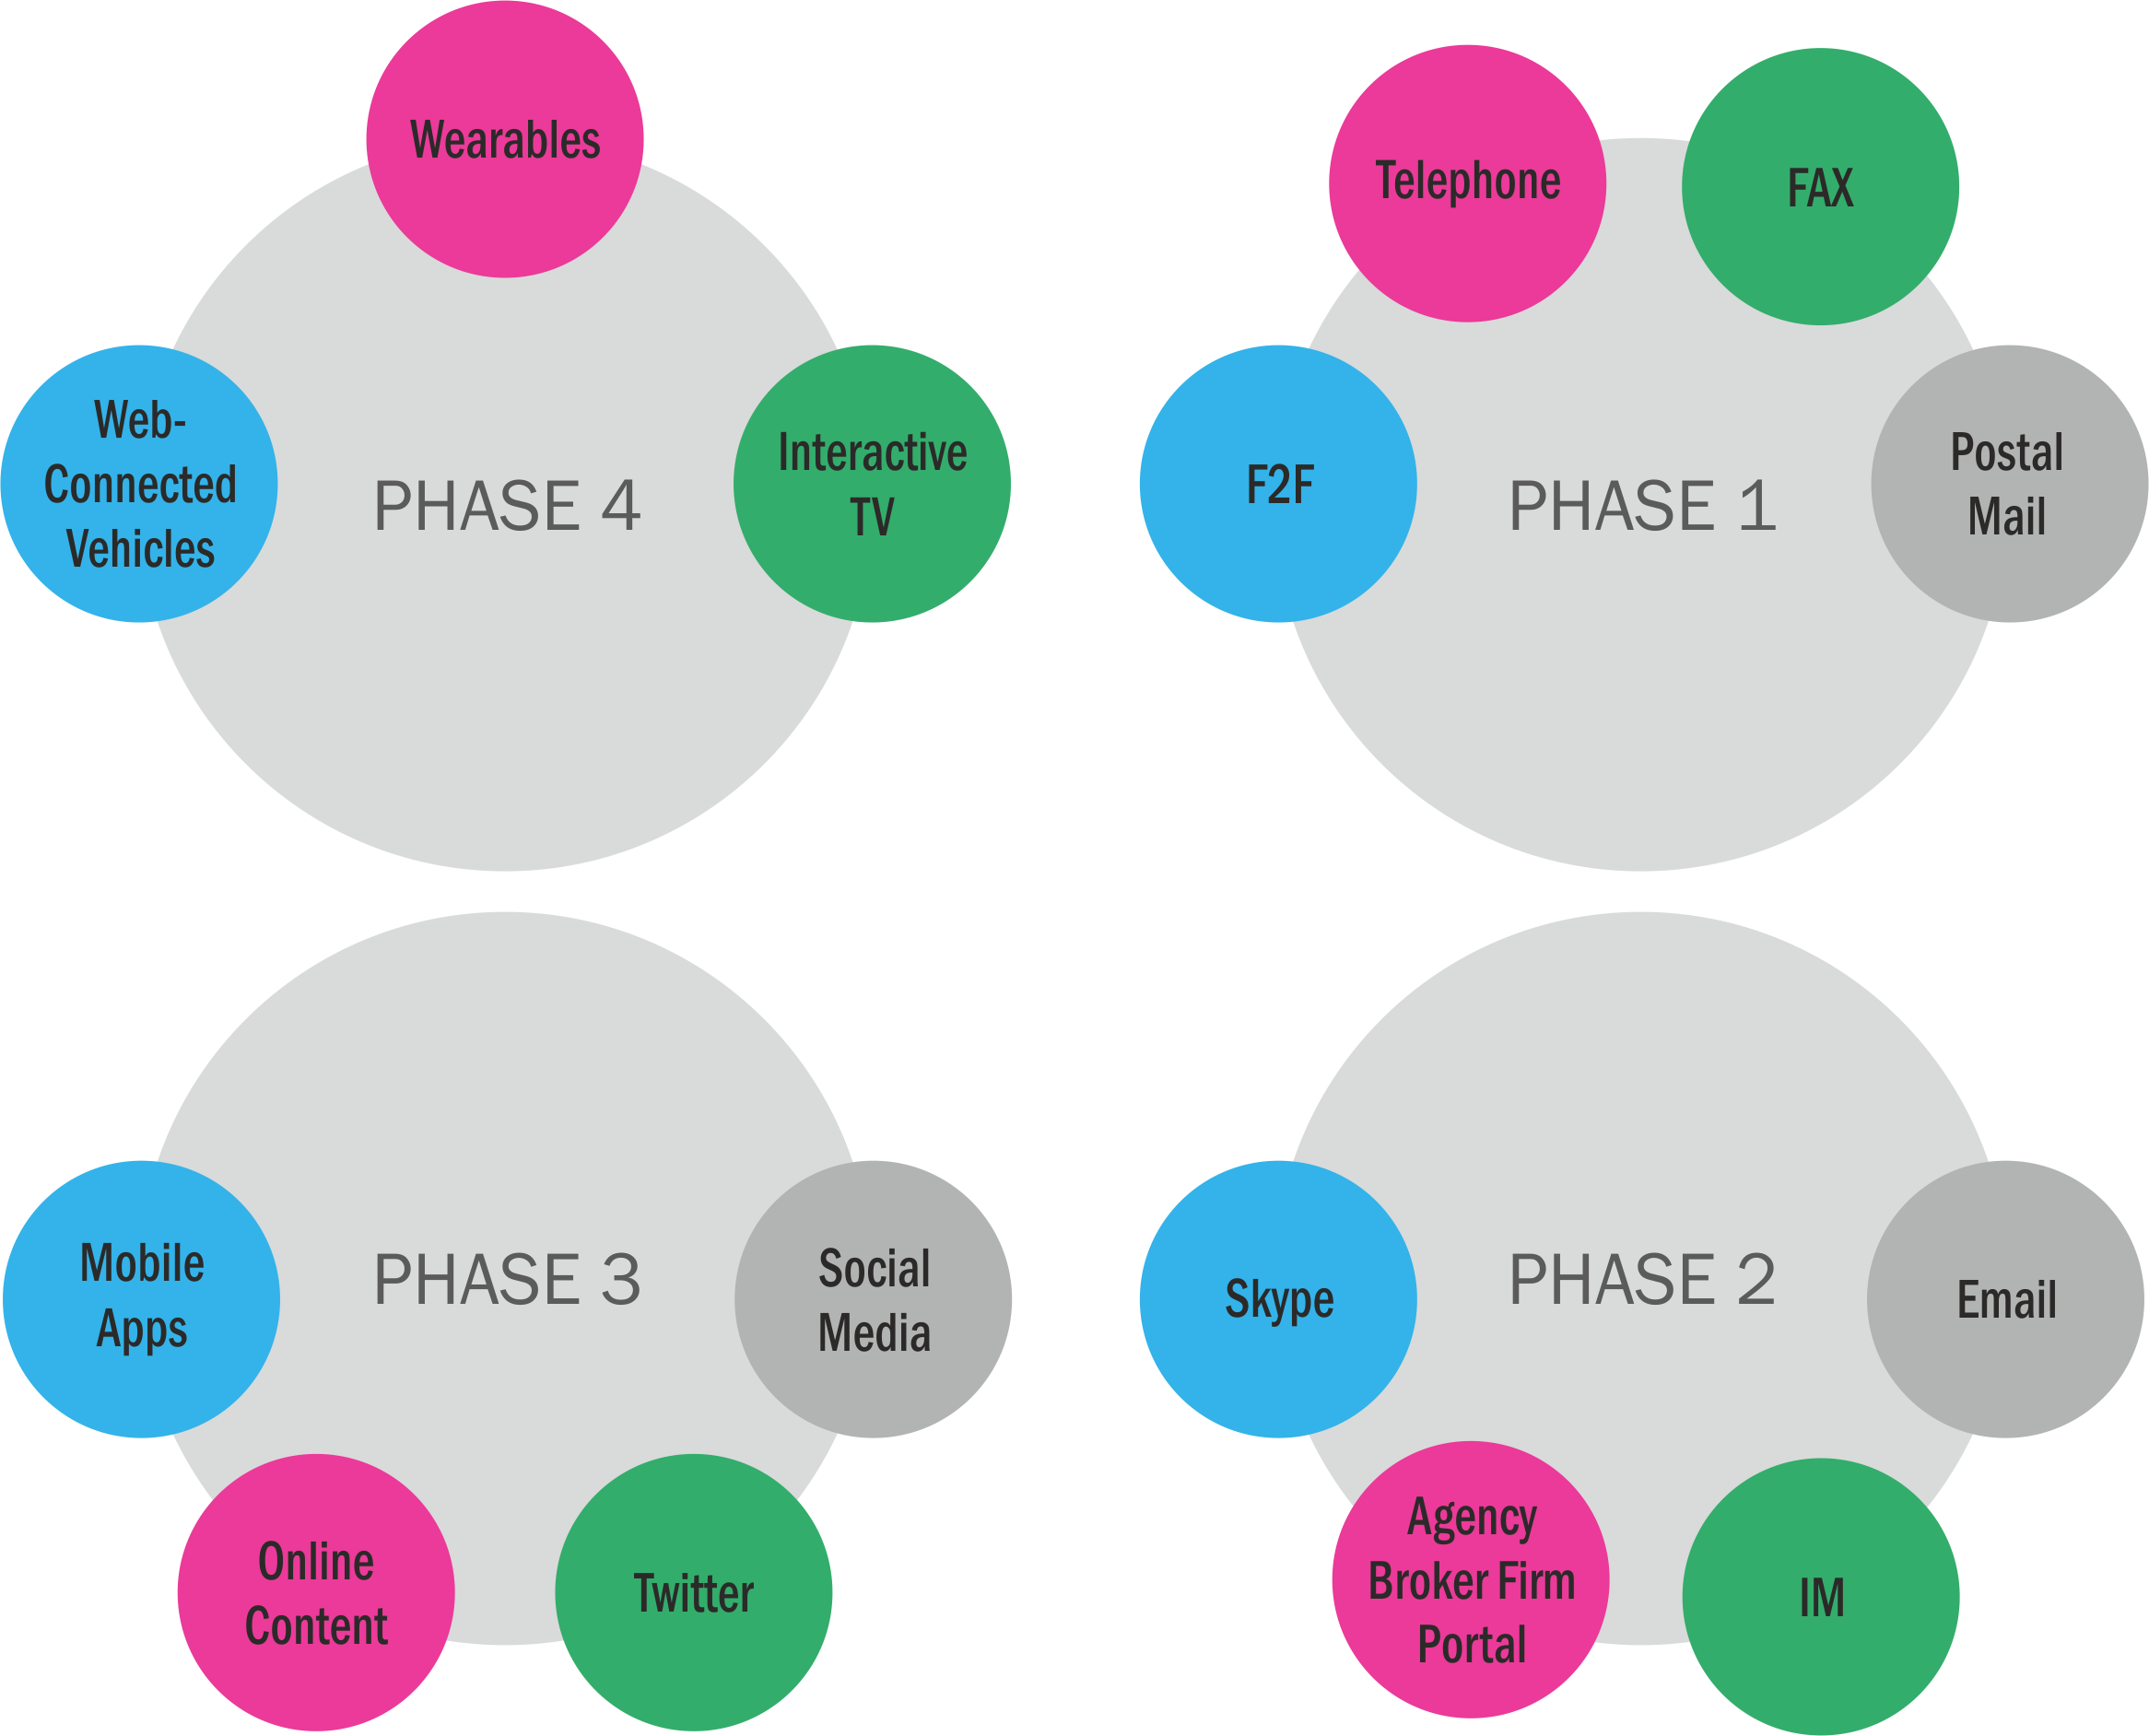 phases of client interaction options